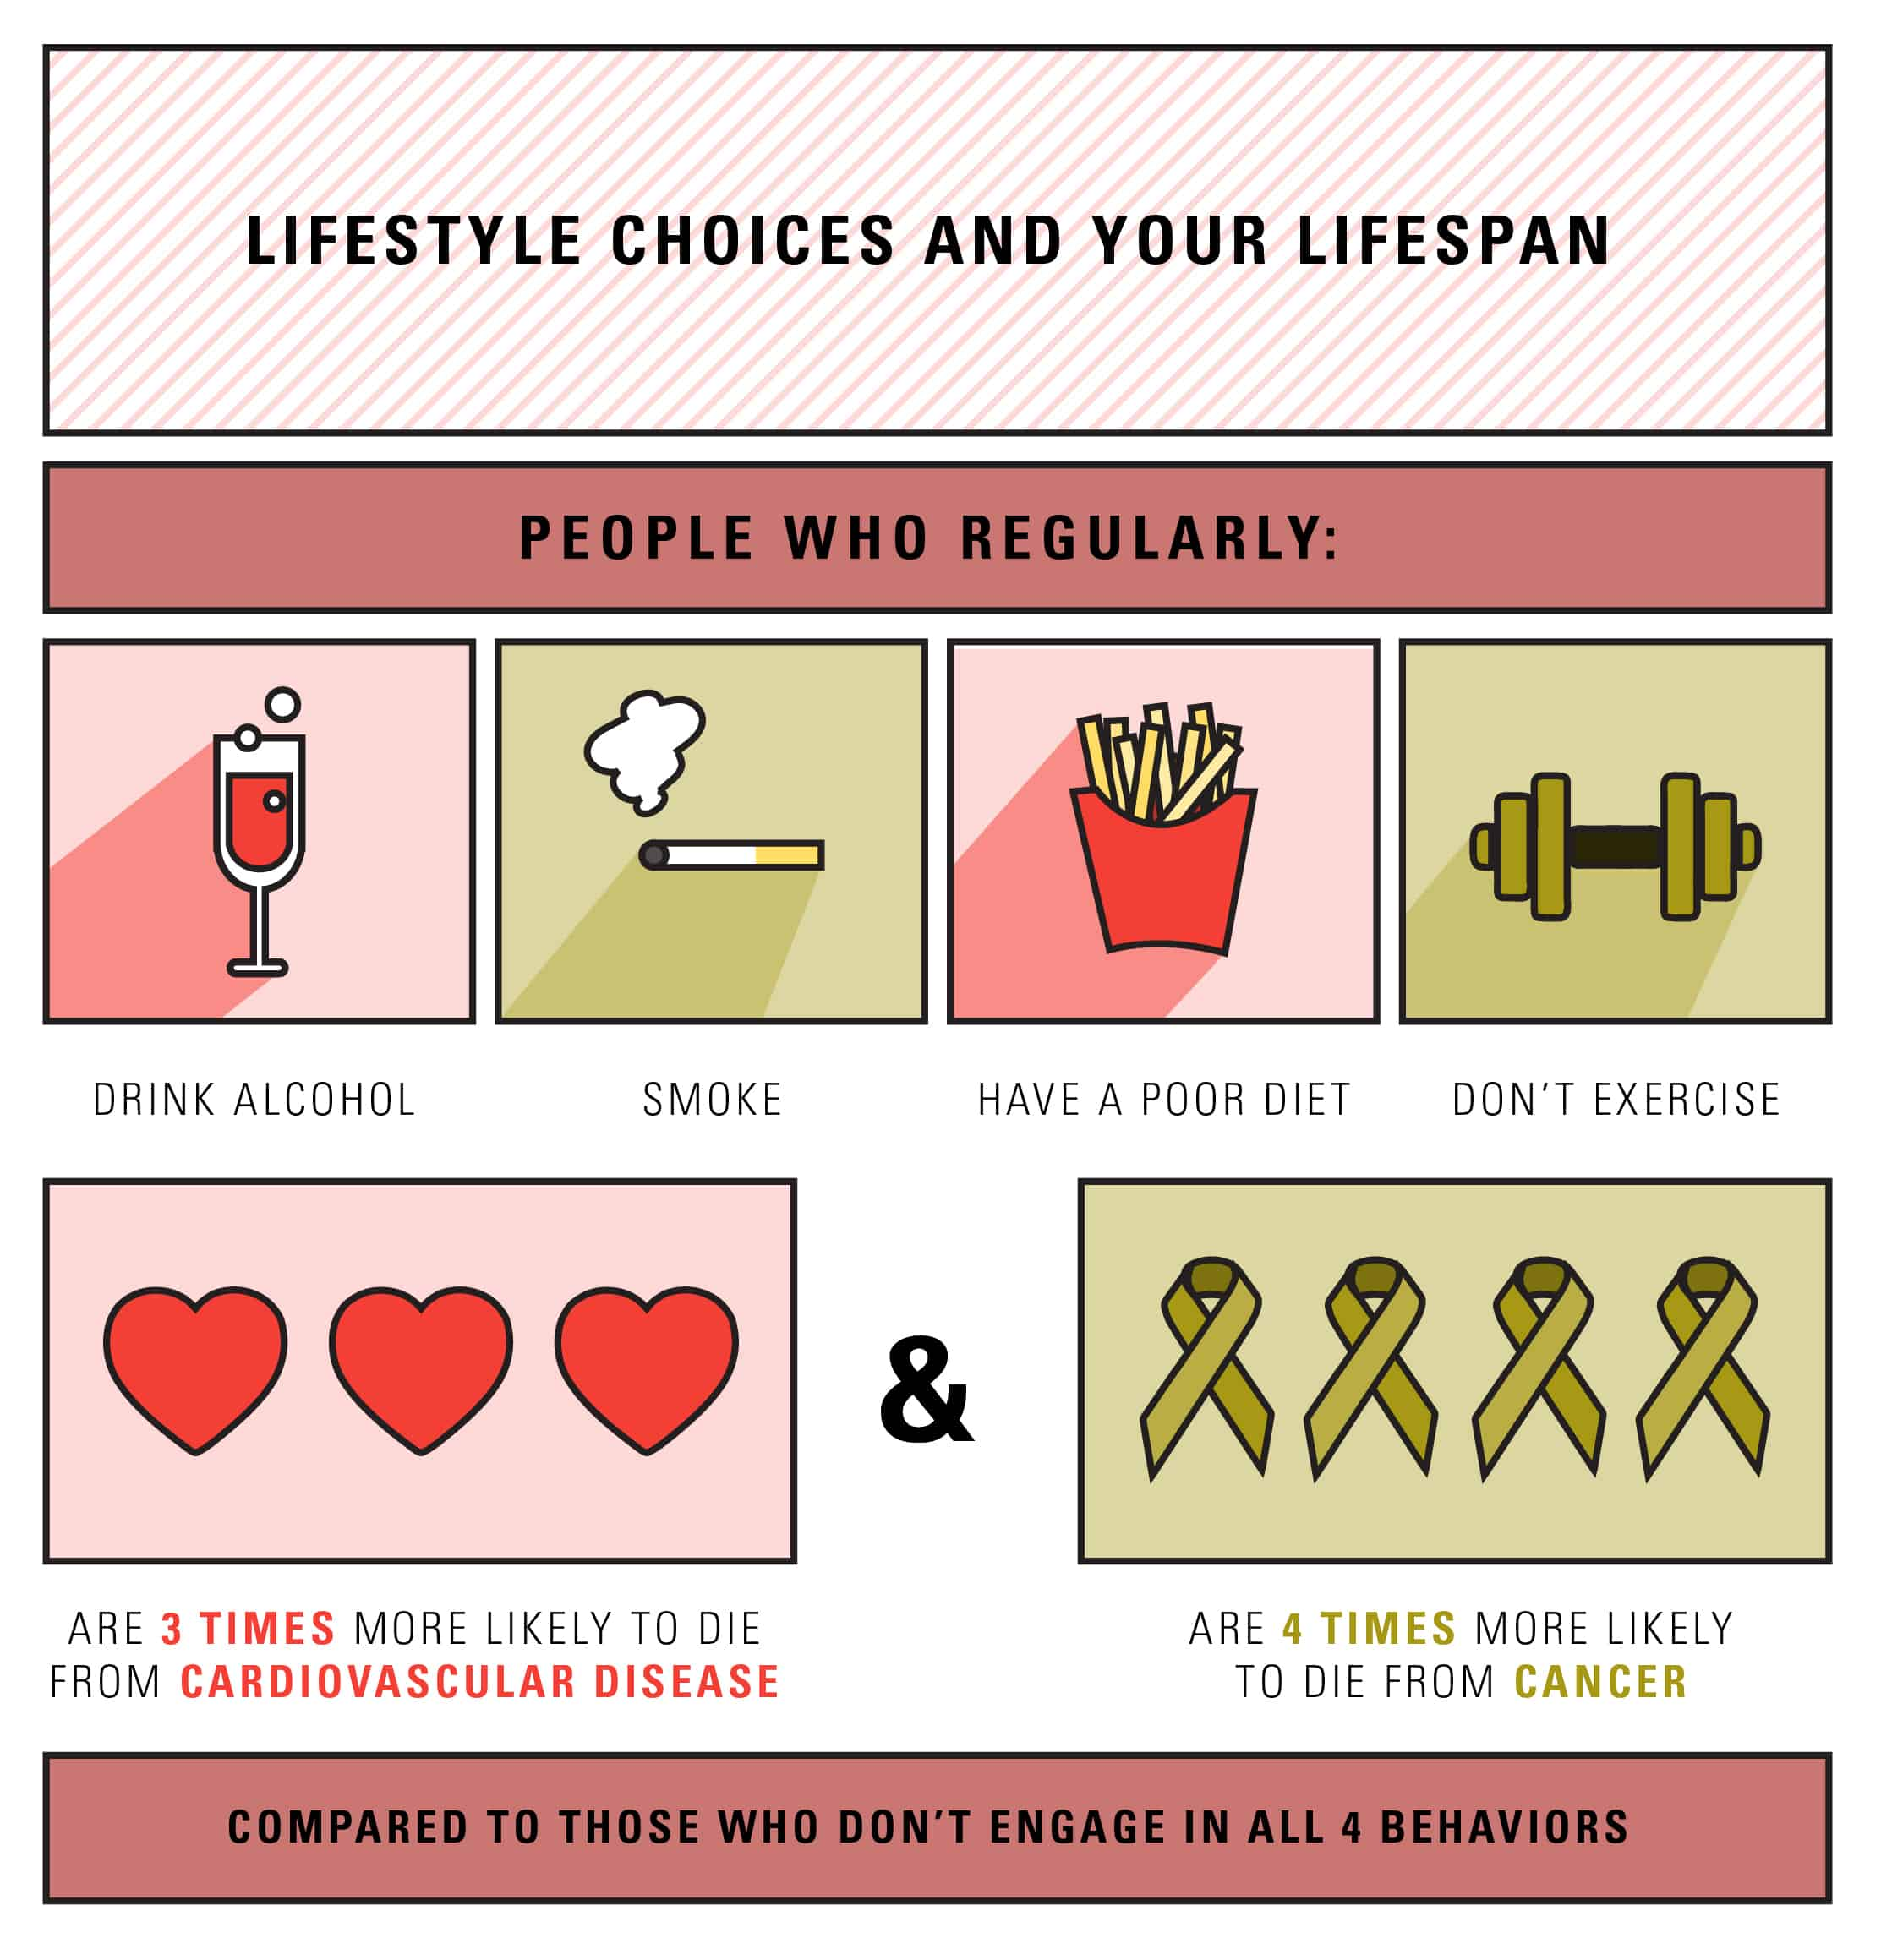 LIFESTYLE CHOICES AND YOUR LIFESPAN